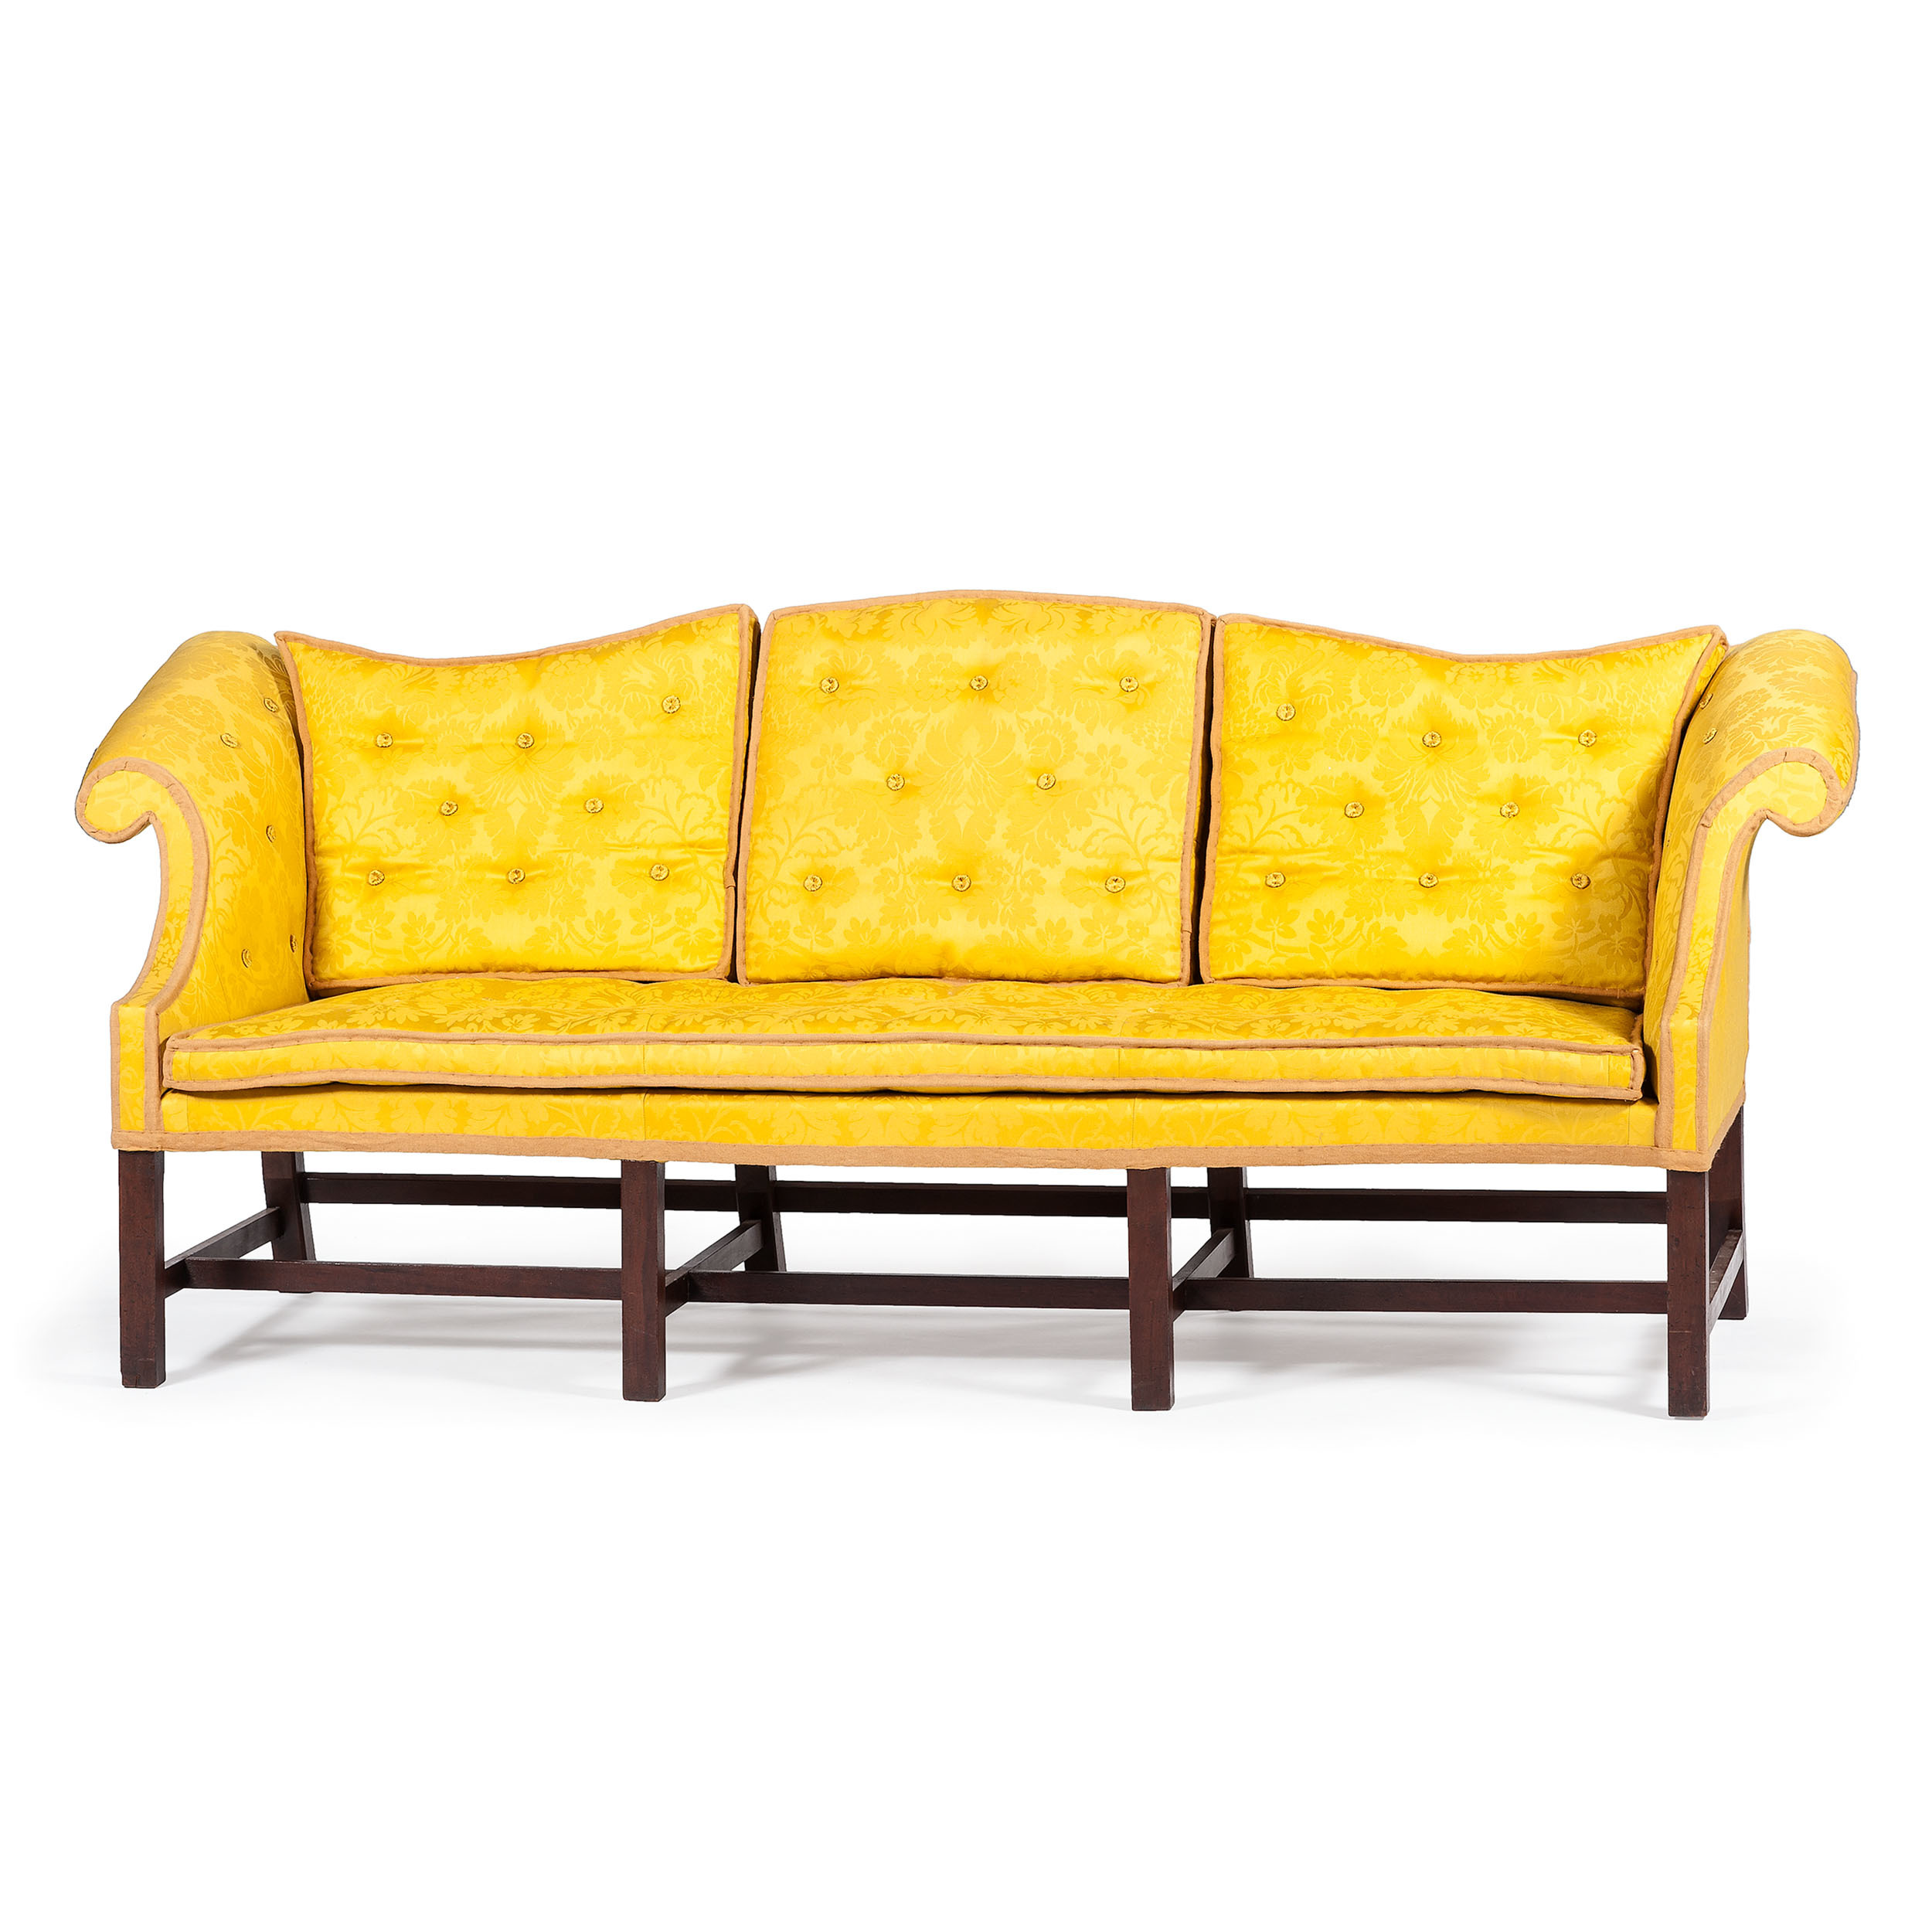 rare chippendale camelback sofa with